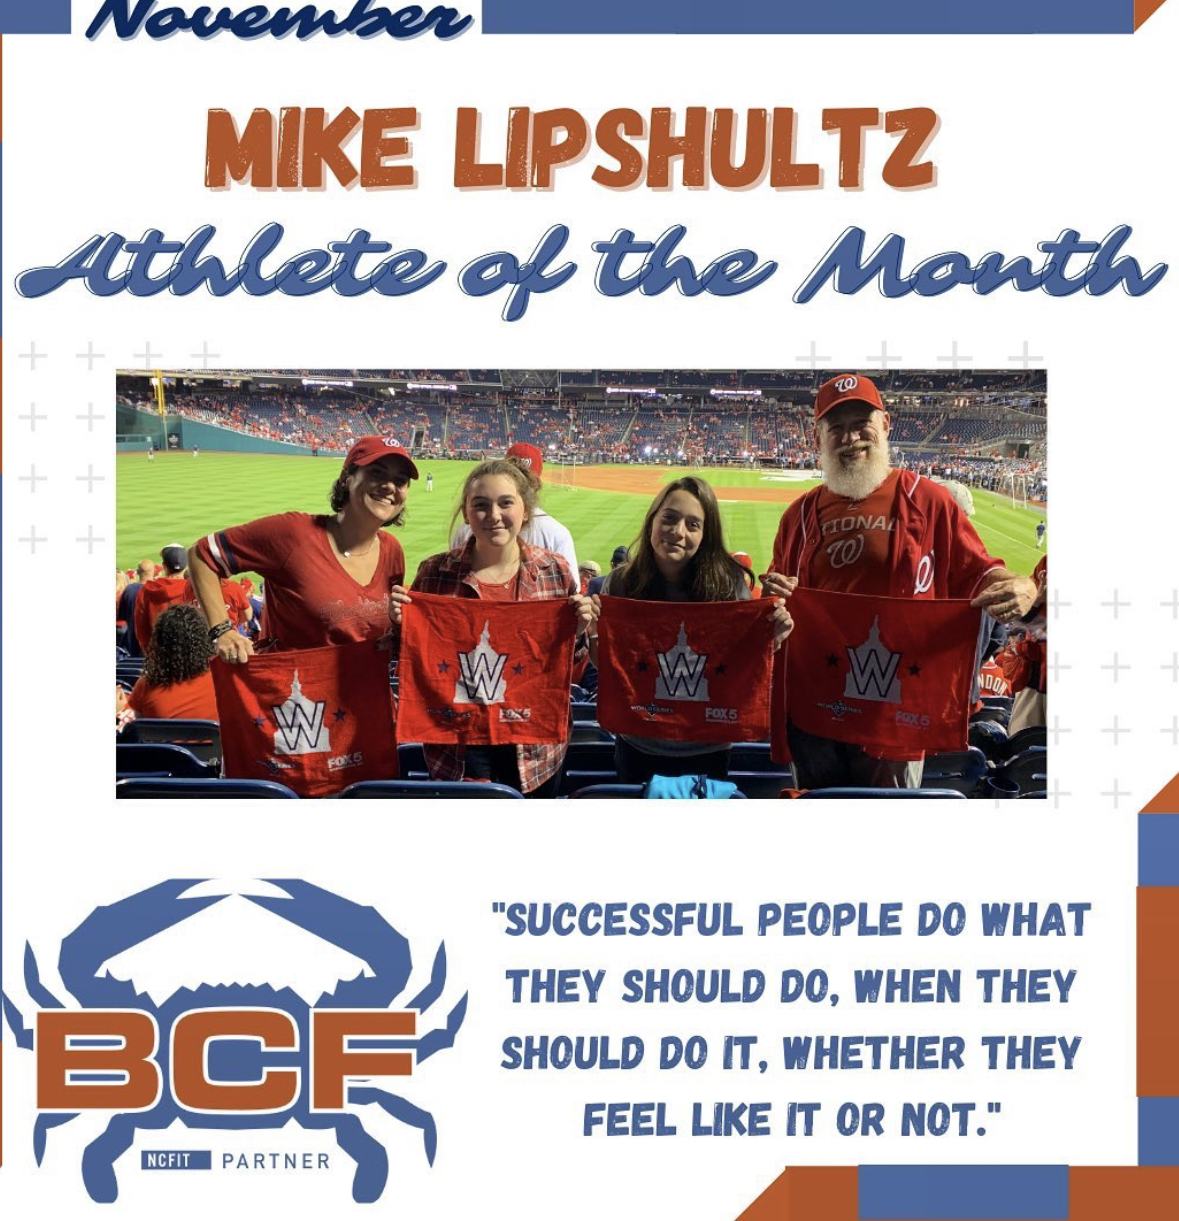 Mike Lipshultzs success story